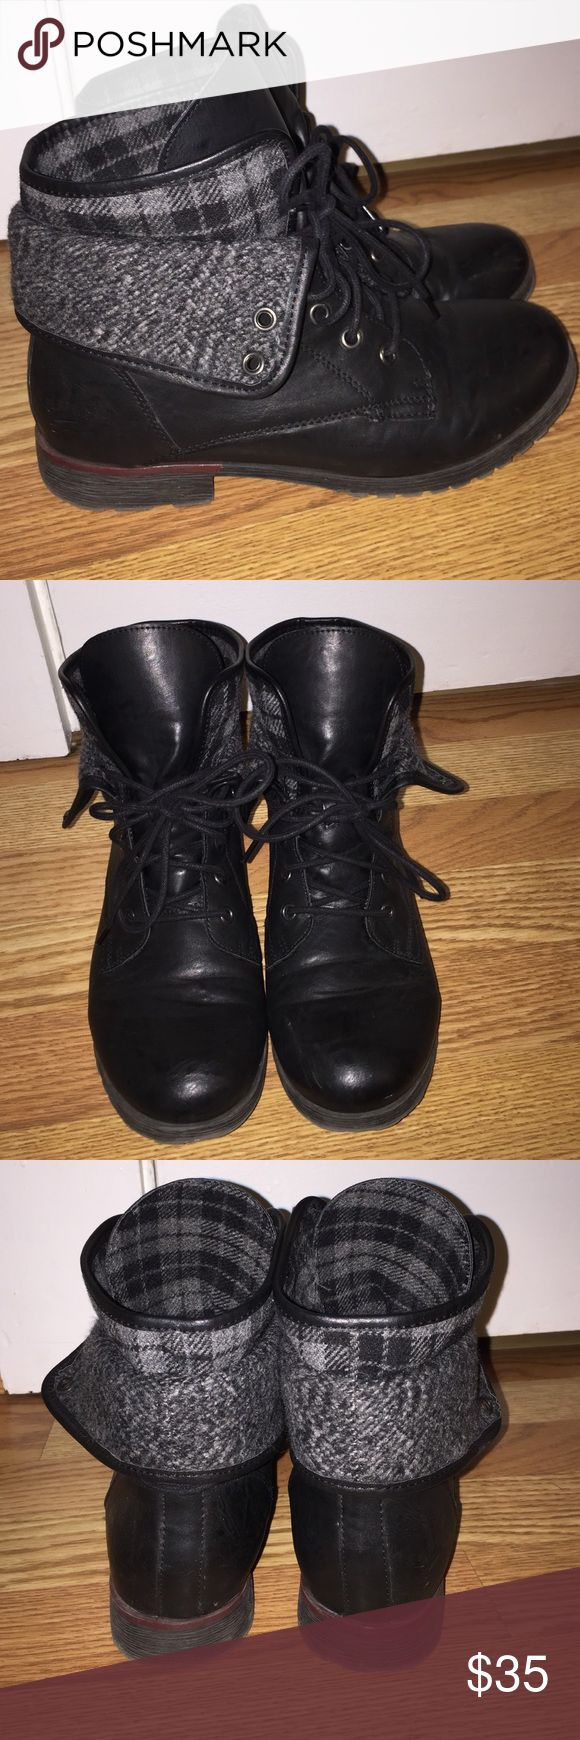 Black Moto Boots These boots are super cute and definitely in style!! They are in a great used condition and are super comfy and have a plaid inner that shoes when rolled down. Or they can be warm flipped up! Rock & Candy Shoes Combat & Moto Boots